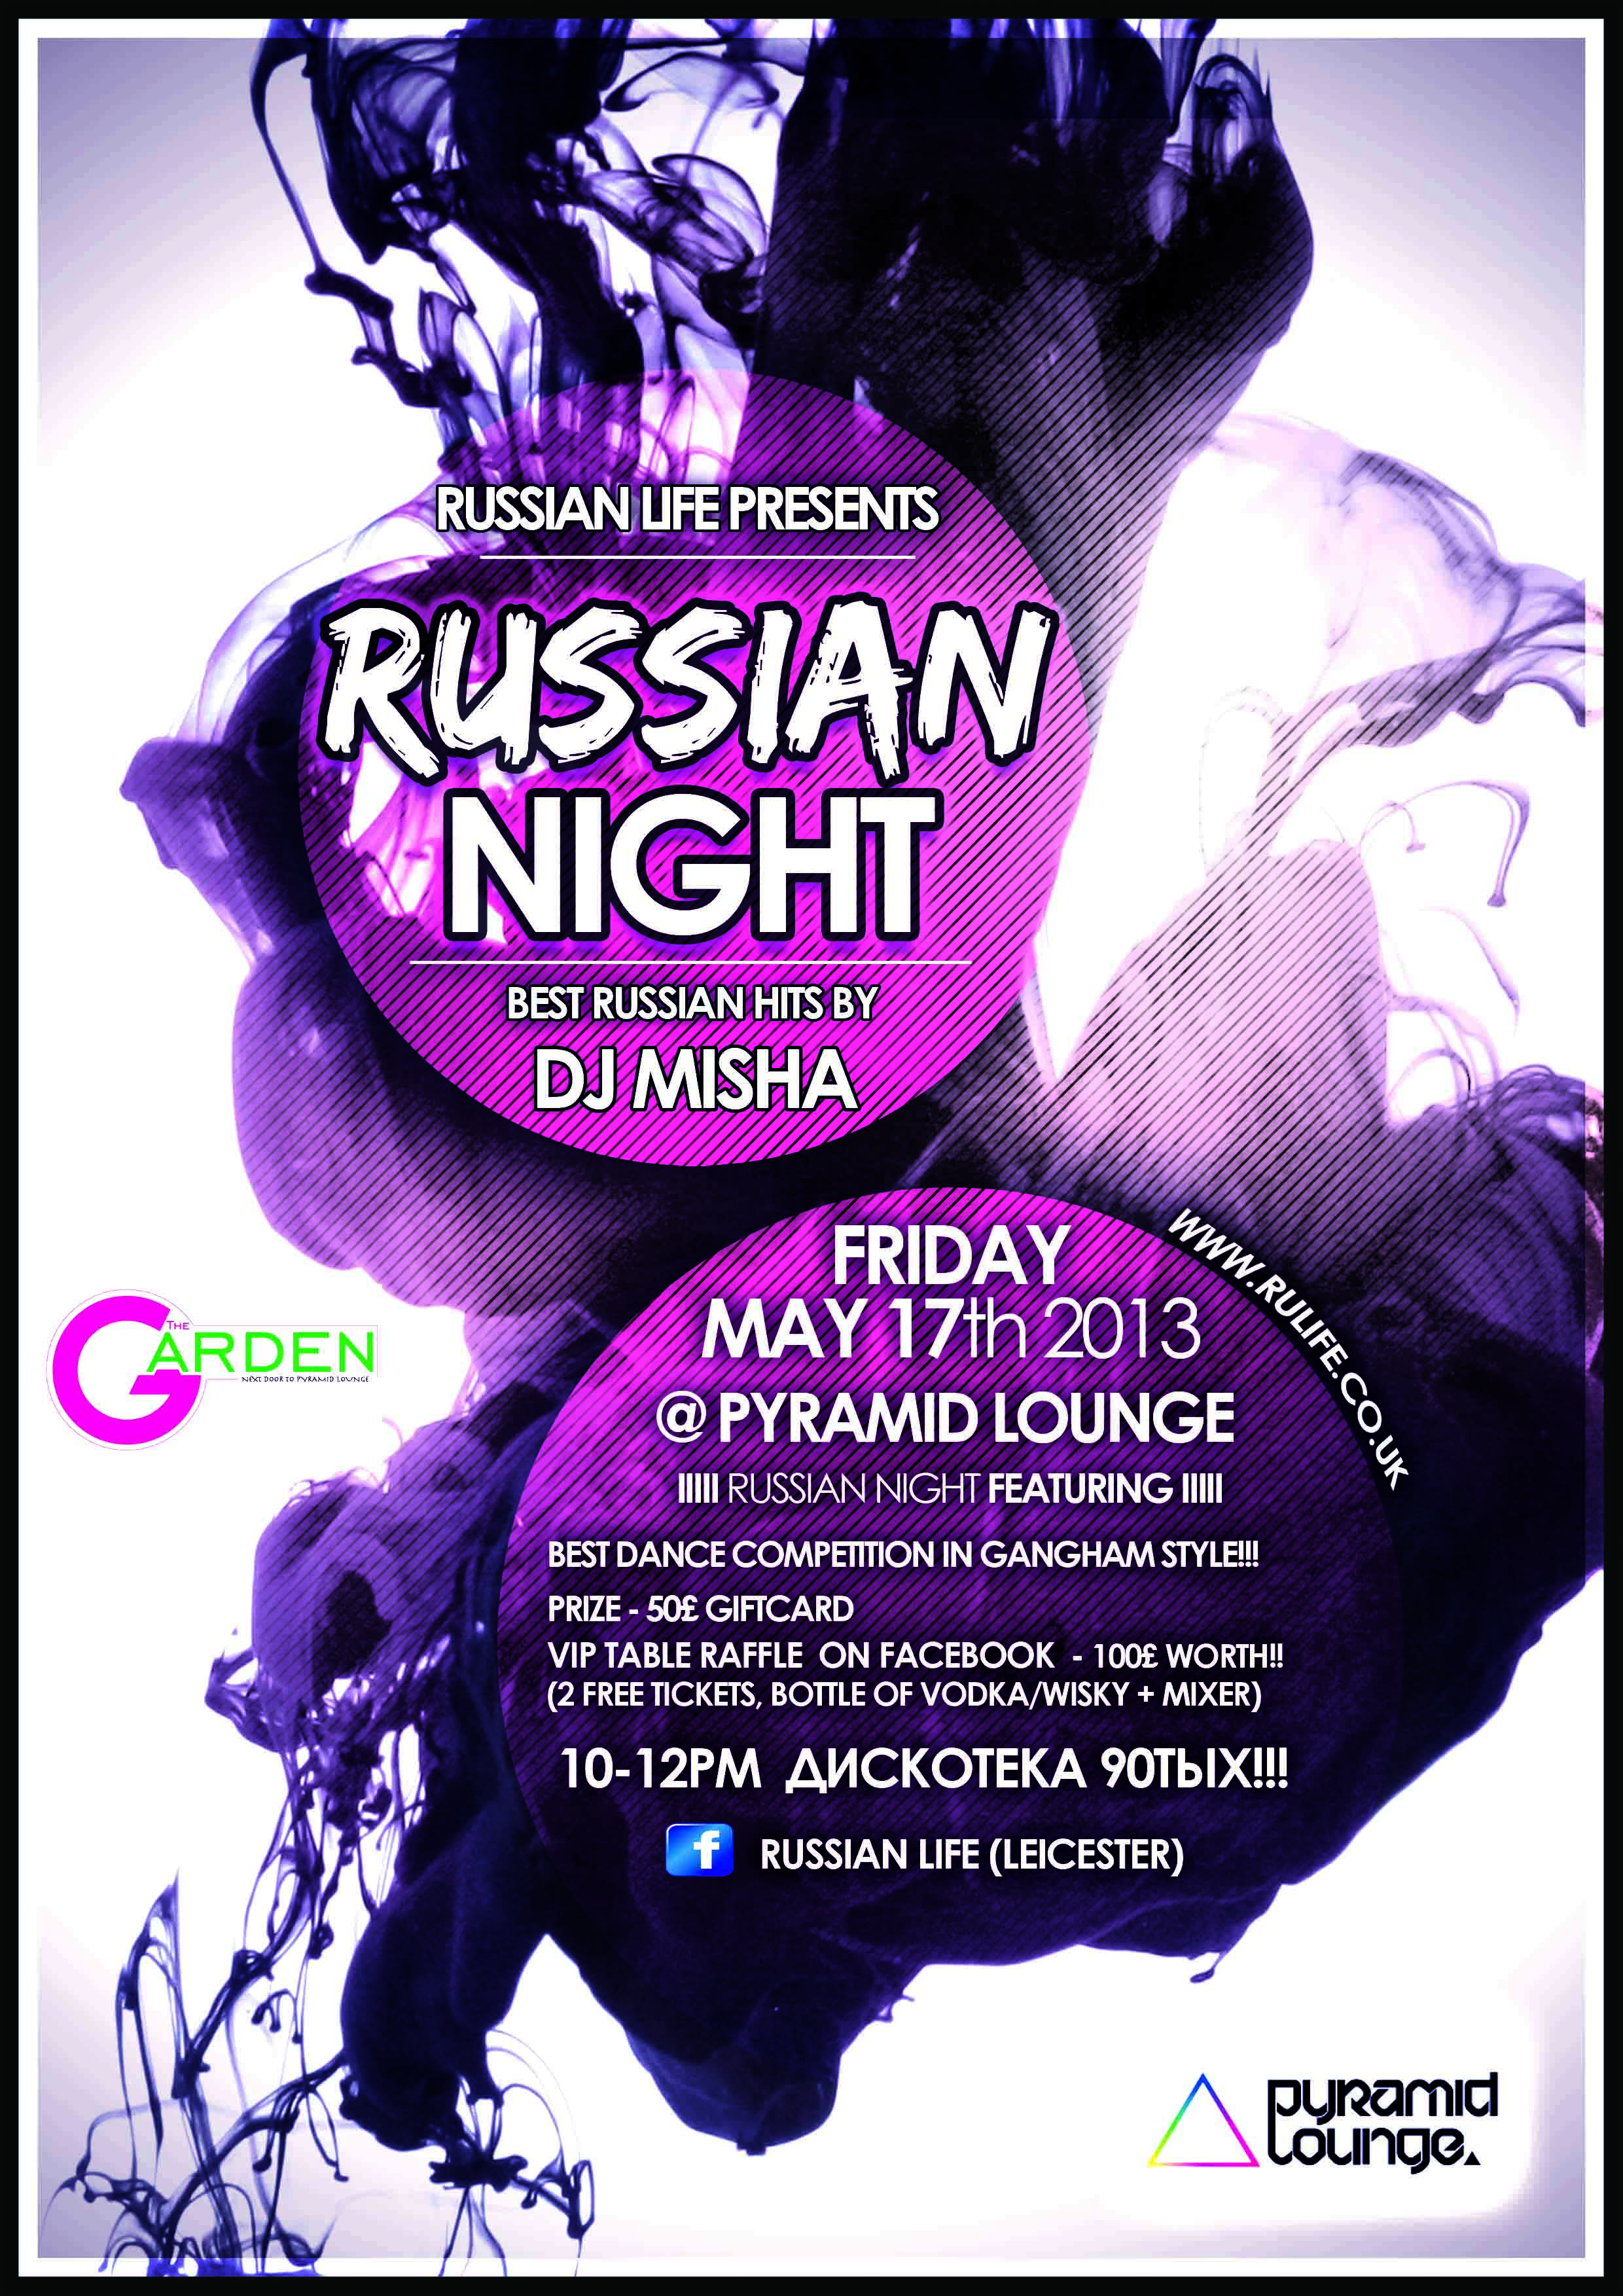 Русская дискотека в Лестере (Russian Party in Leicester) 17.05.13